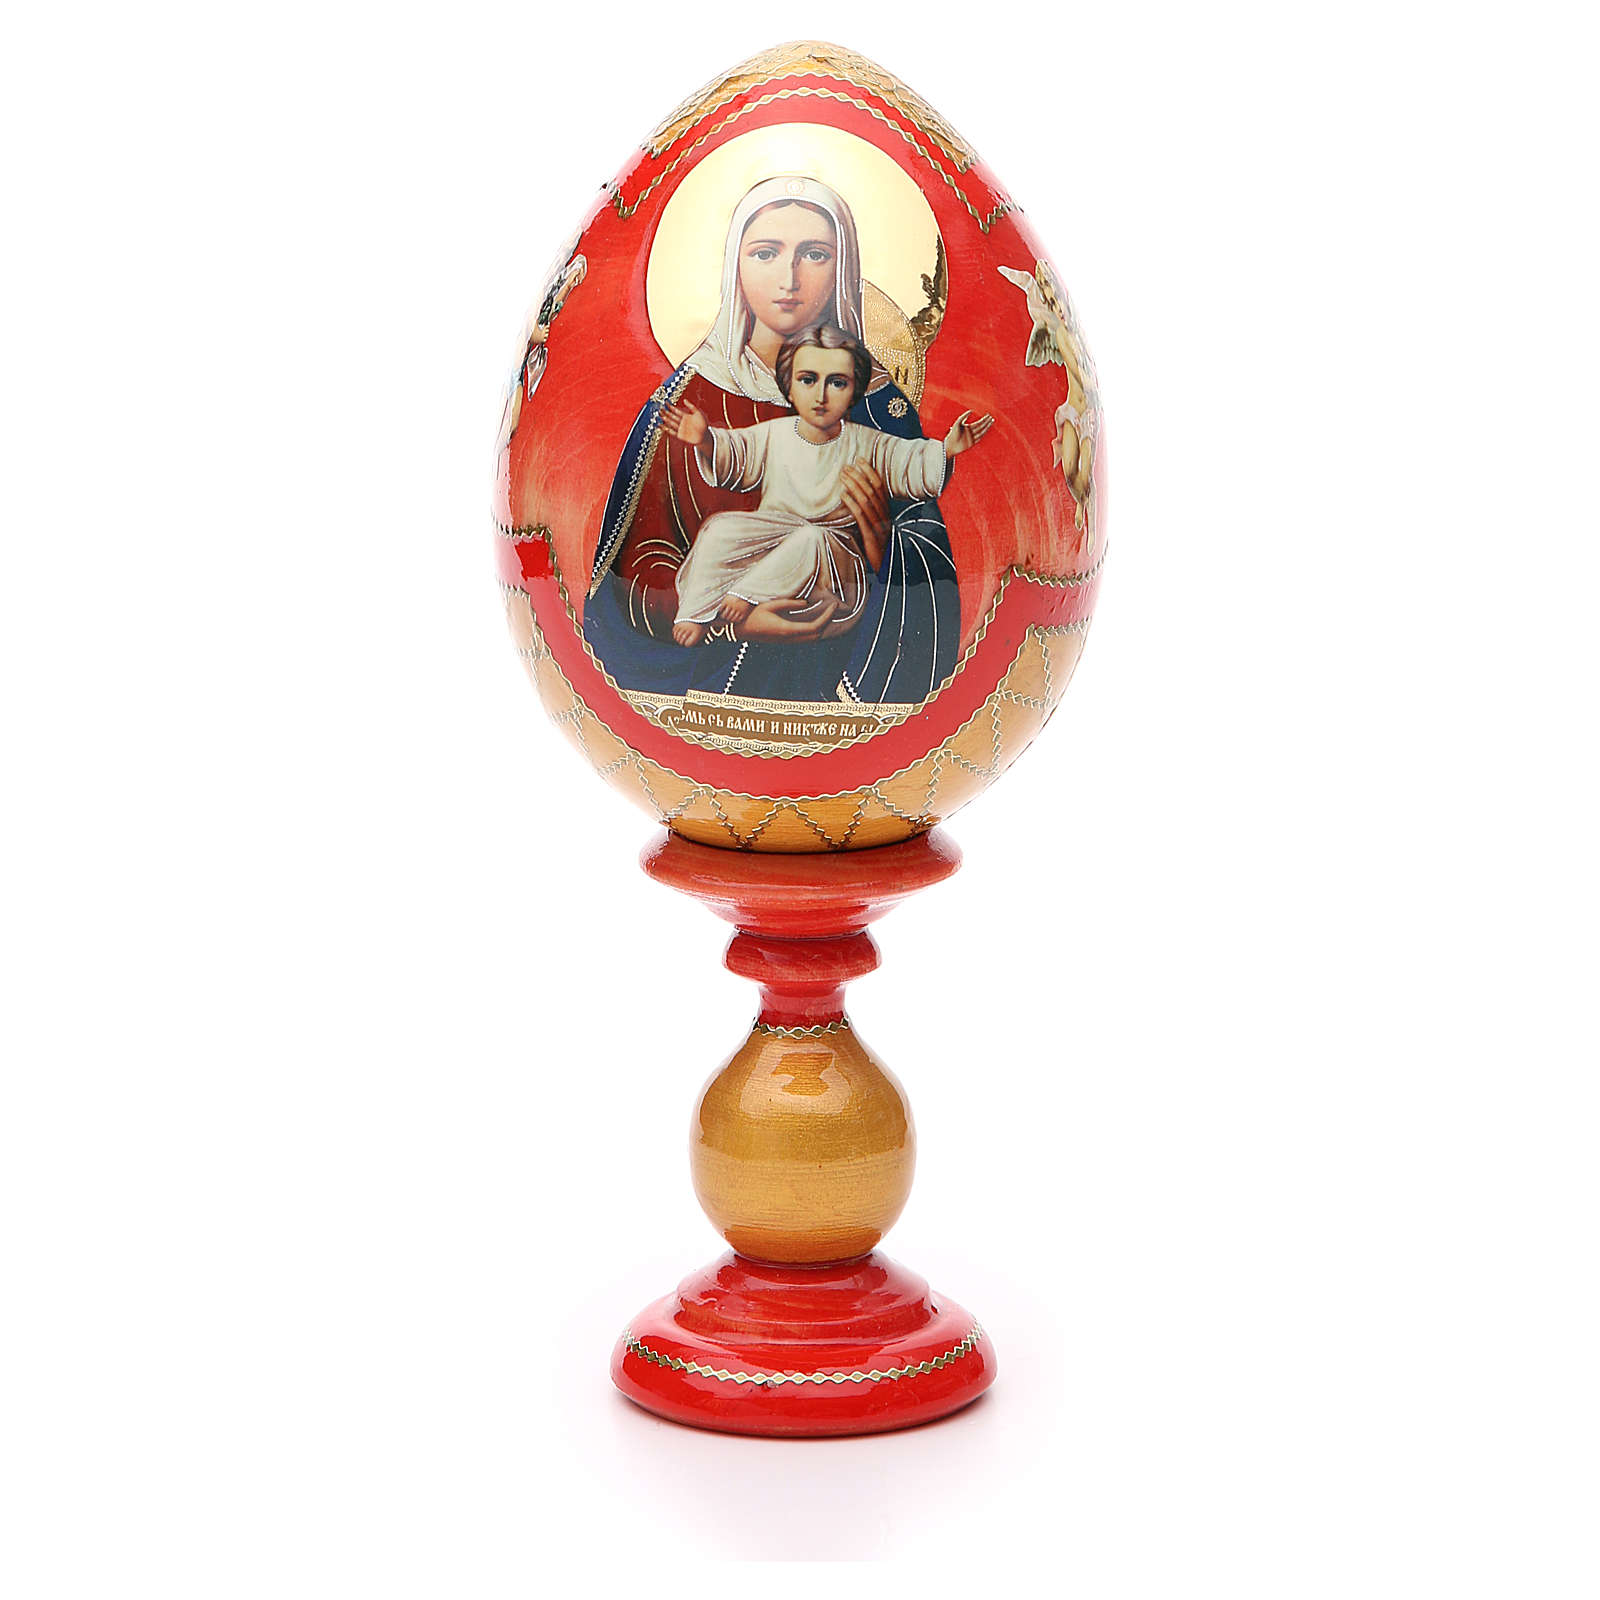 Russian Egg I'm with you découpage, Fabergè style 20cm 4